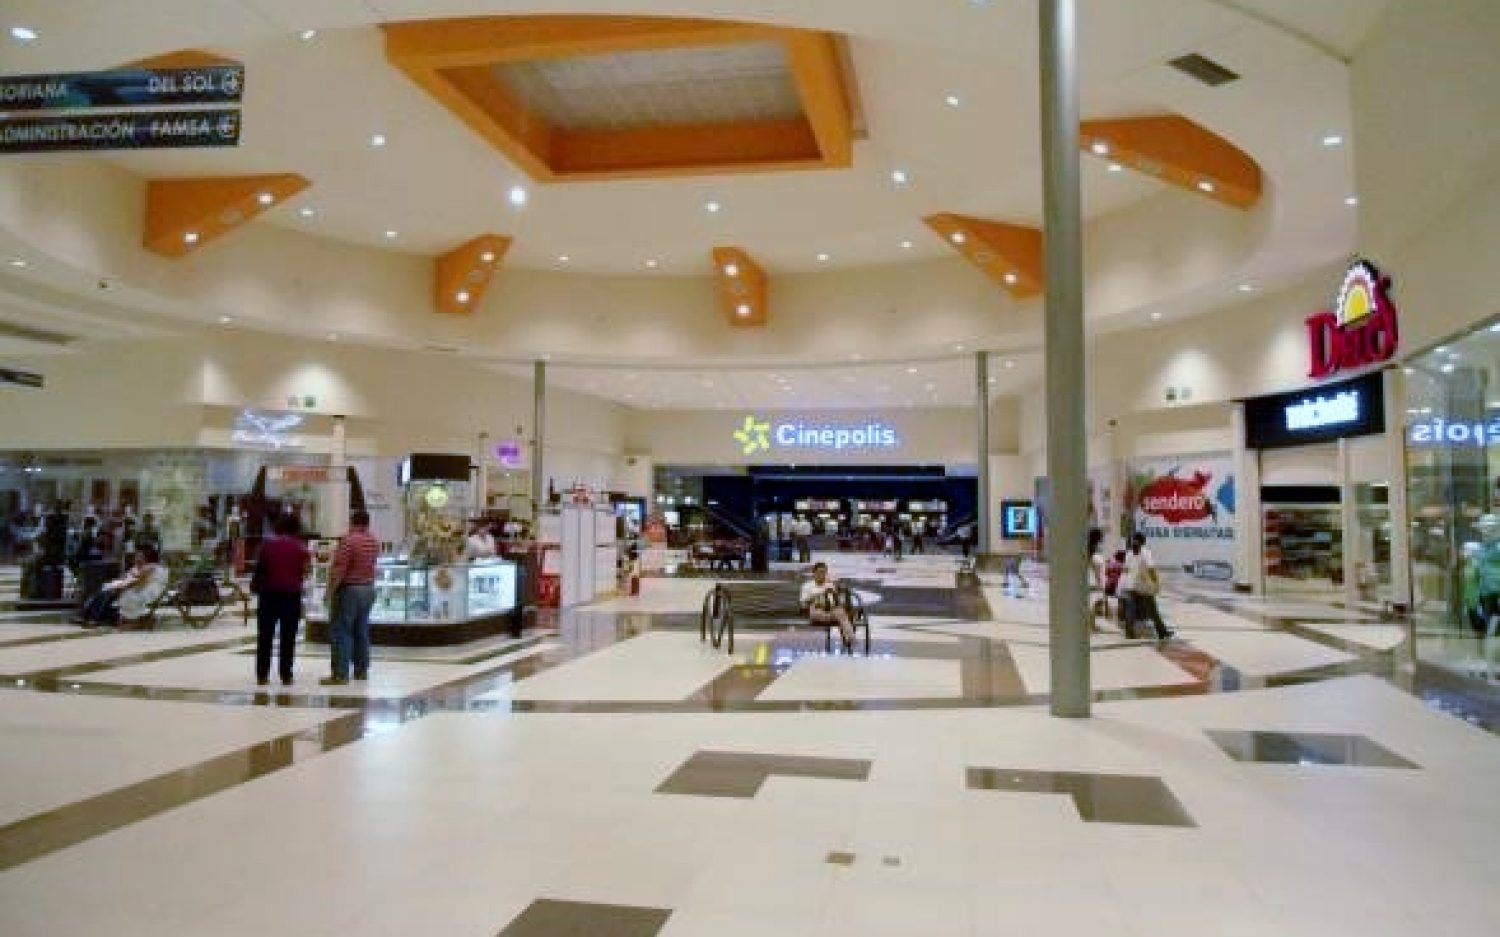 Co-Plaza Sendero Villahermosa (25)